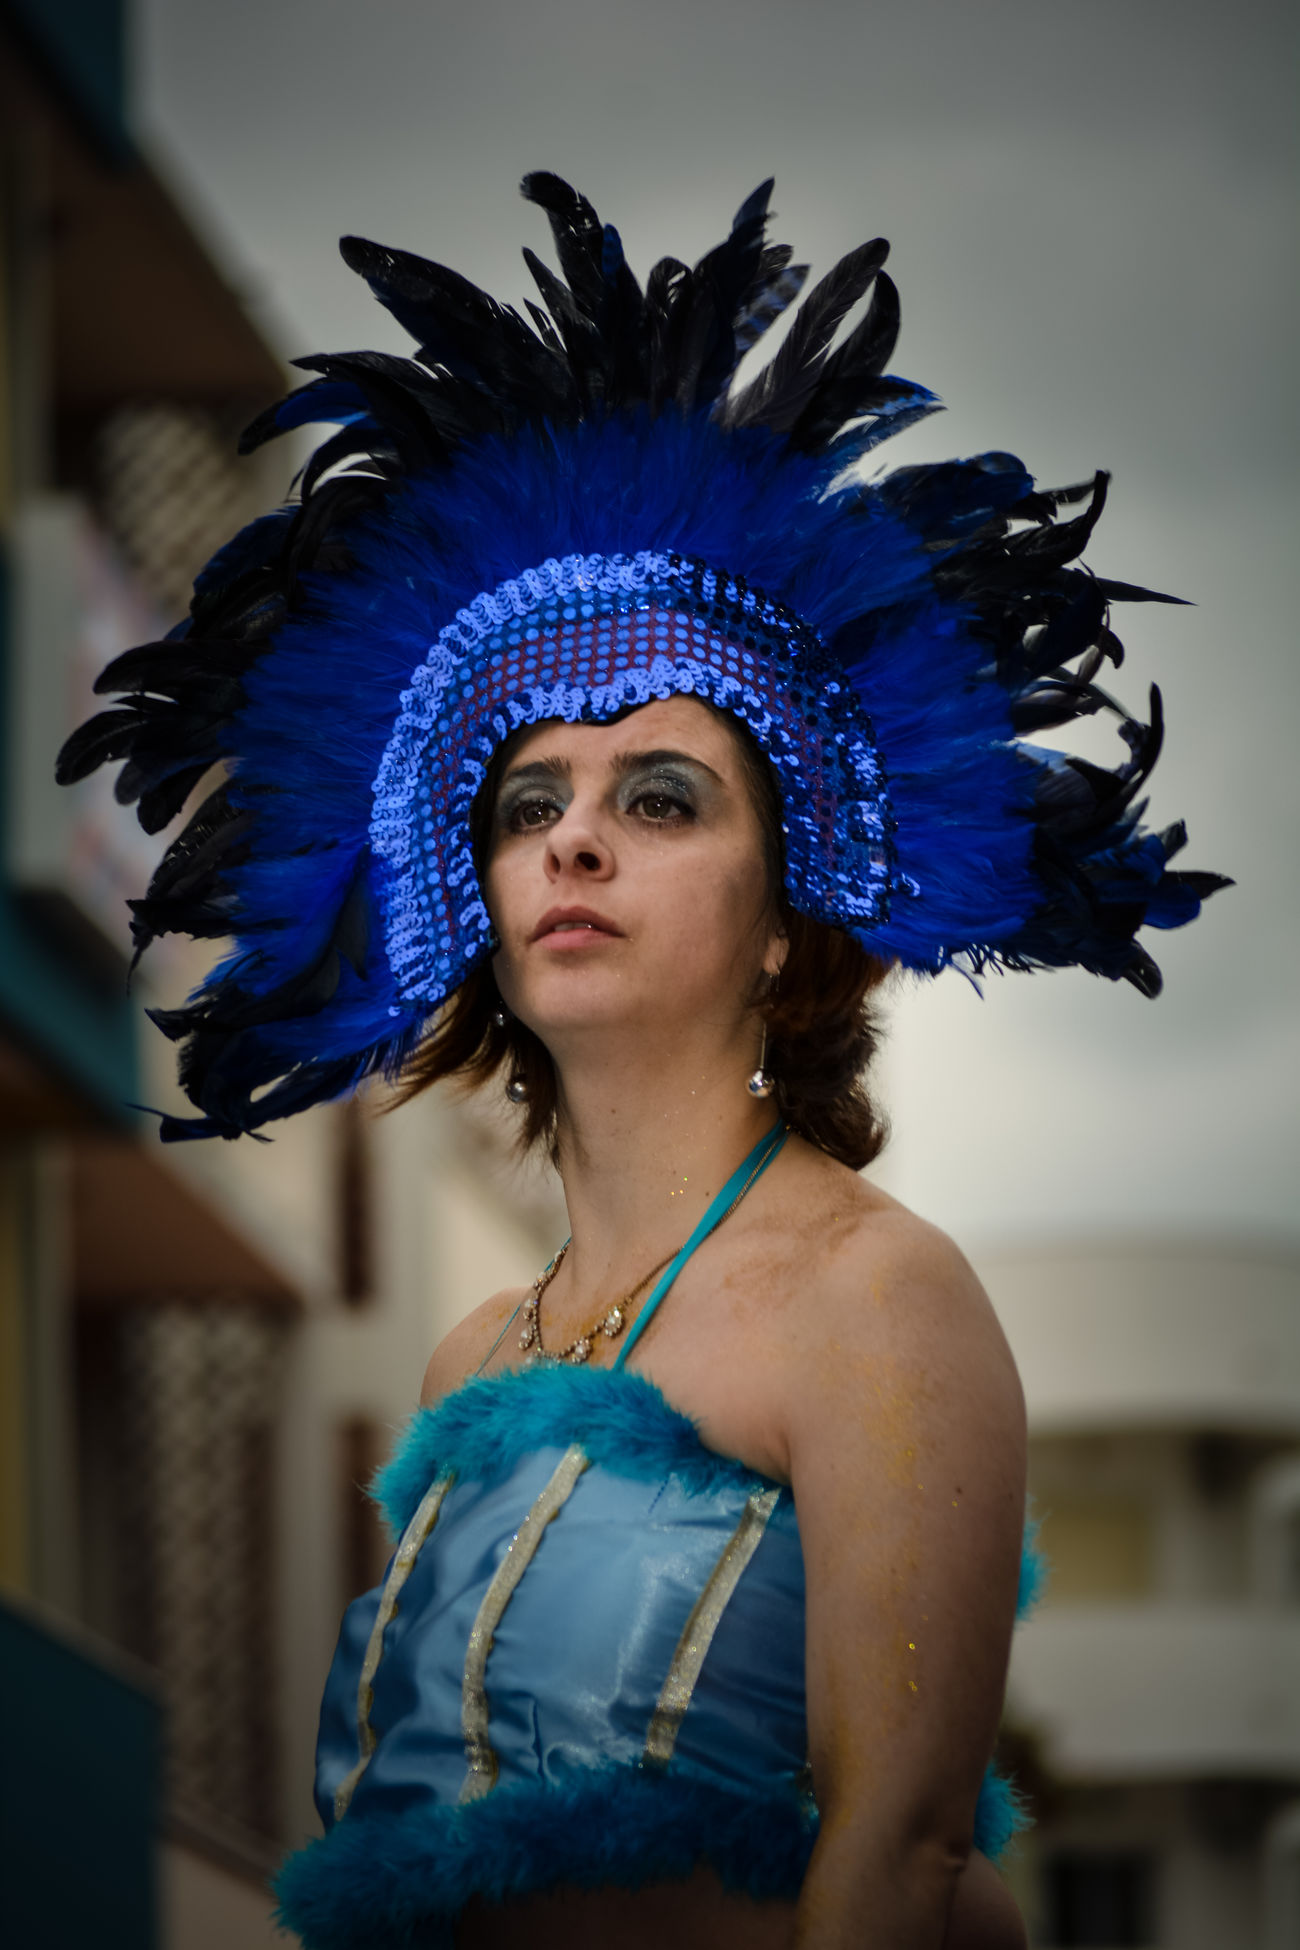 Carnival's parade 2017 Adult Adults Only Artist Arts Culture And Entertainment Beautiful Woman Beauty Blue Dancer Dancing Feather  Glamour Headdress Headwear Mid Adult One Person One Woman Only Only Women Outdoors People Performance Performance Group Portrait Royalty Sequin Traditional Clothing